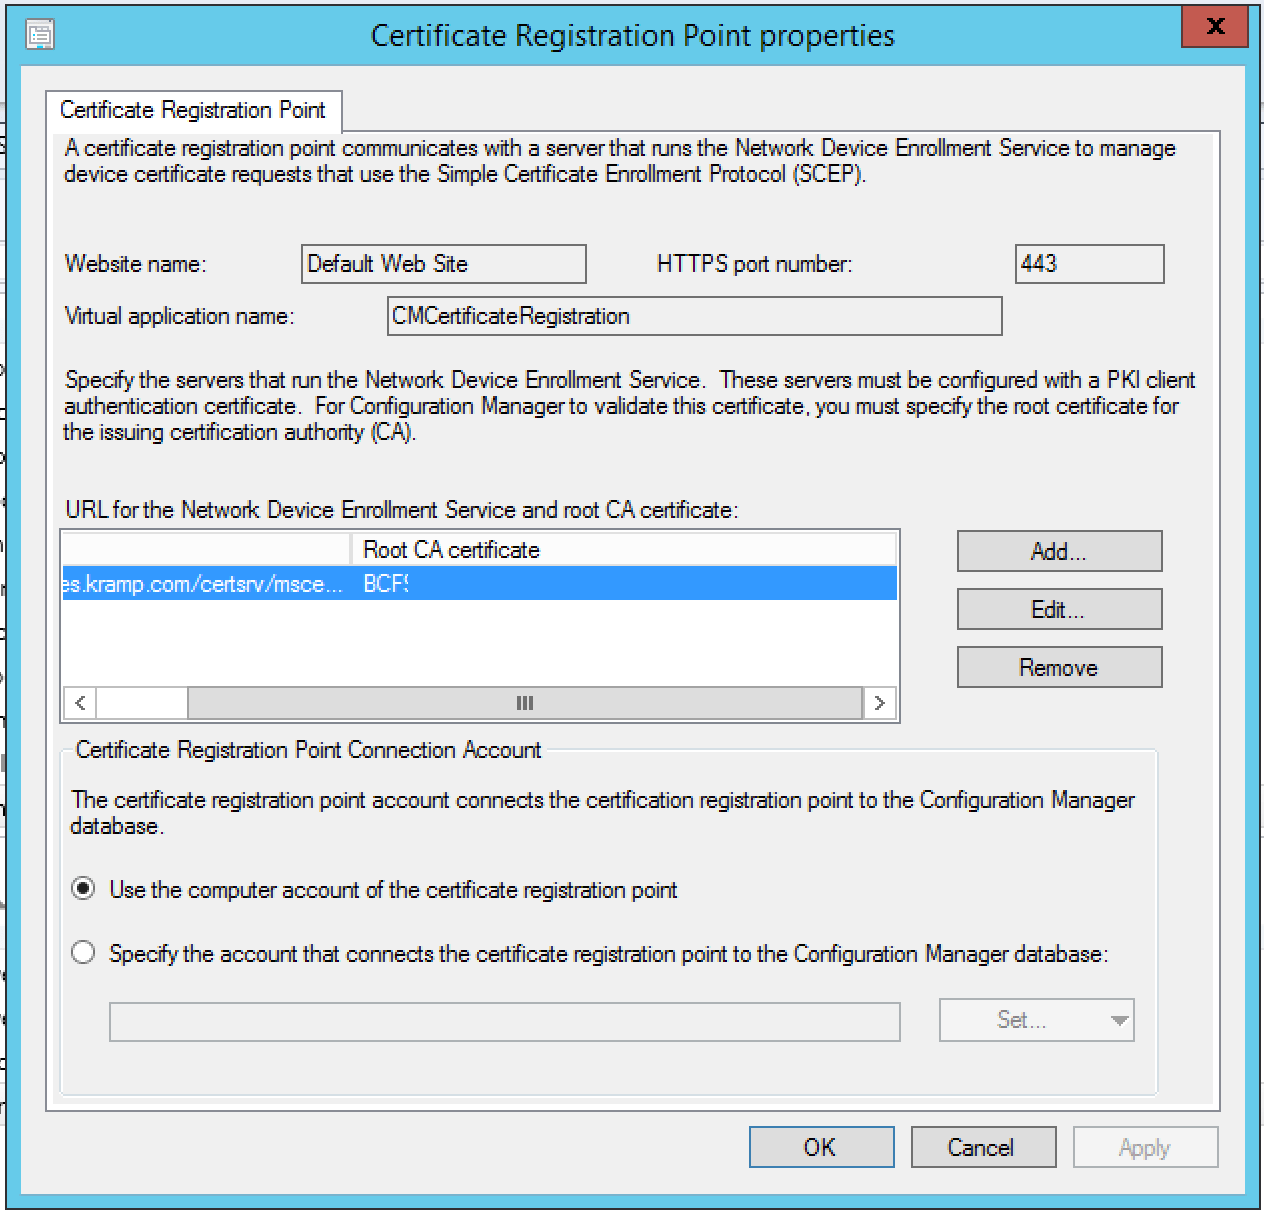 Intune/SCCM hybrid with NDES does not deploy any certificate